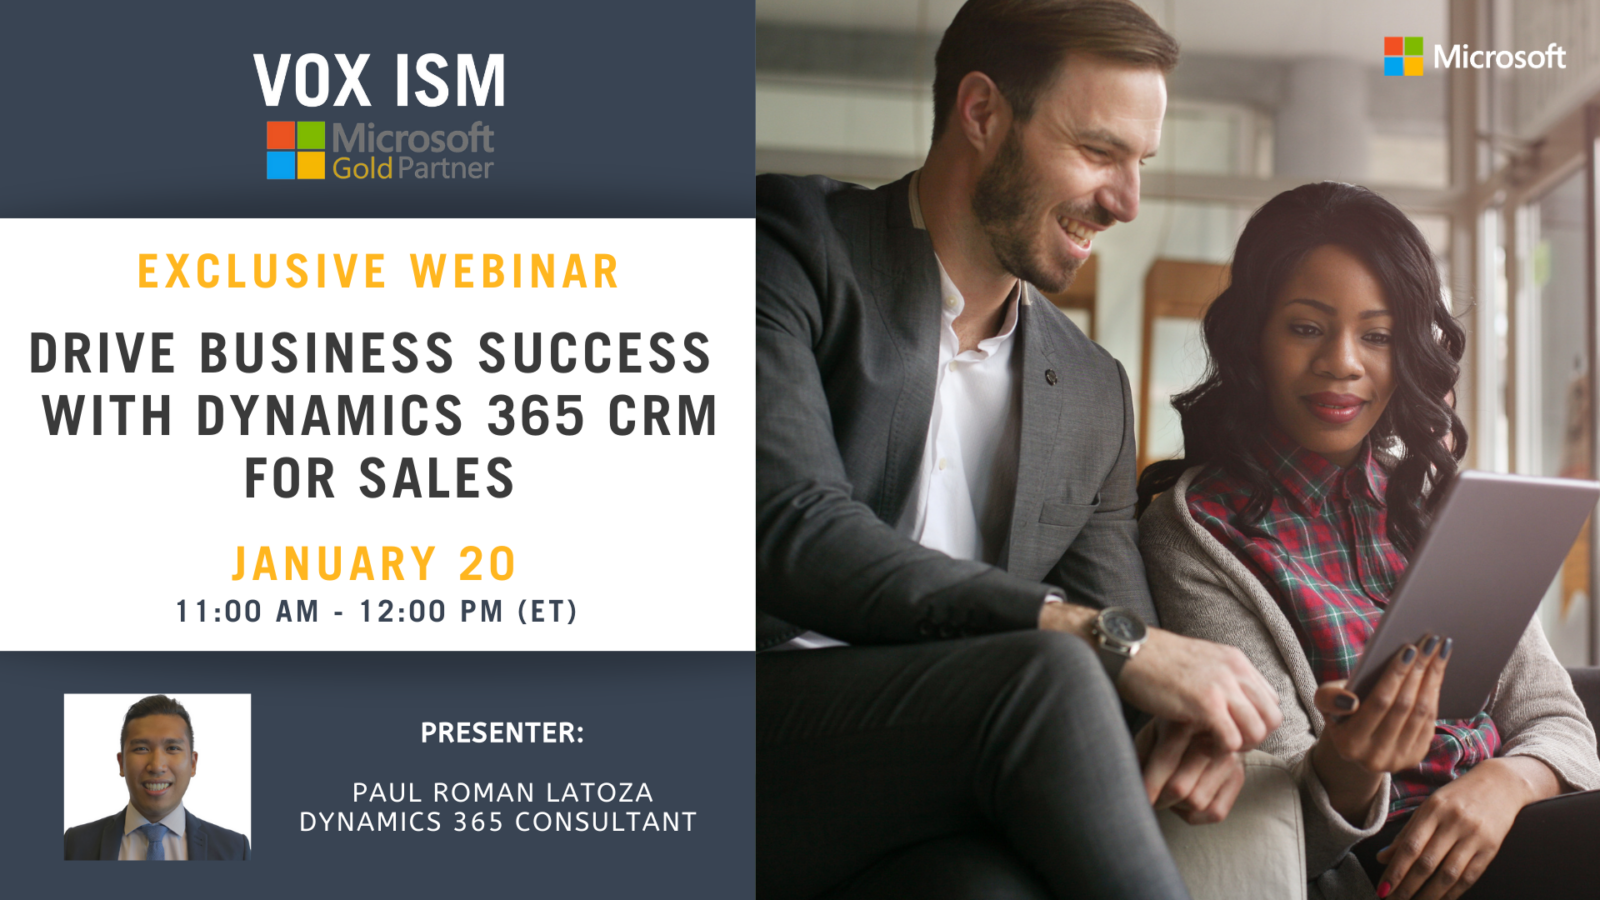 Drive business success with Dynamics 365 CRM for Sales - January 20 - Webinar